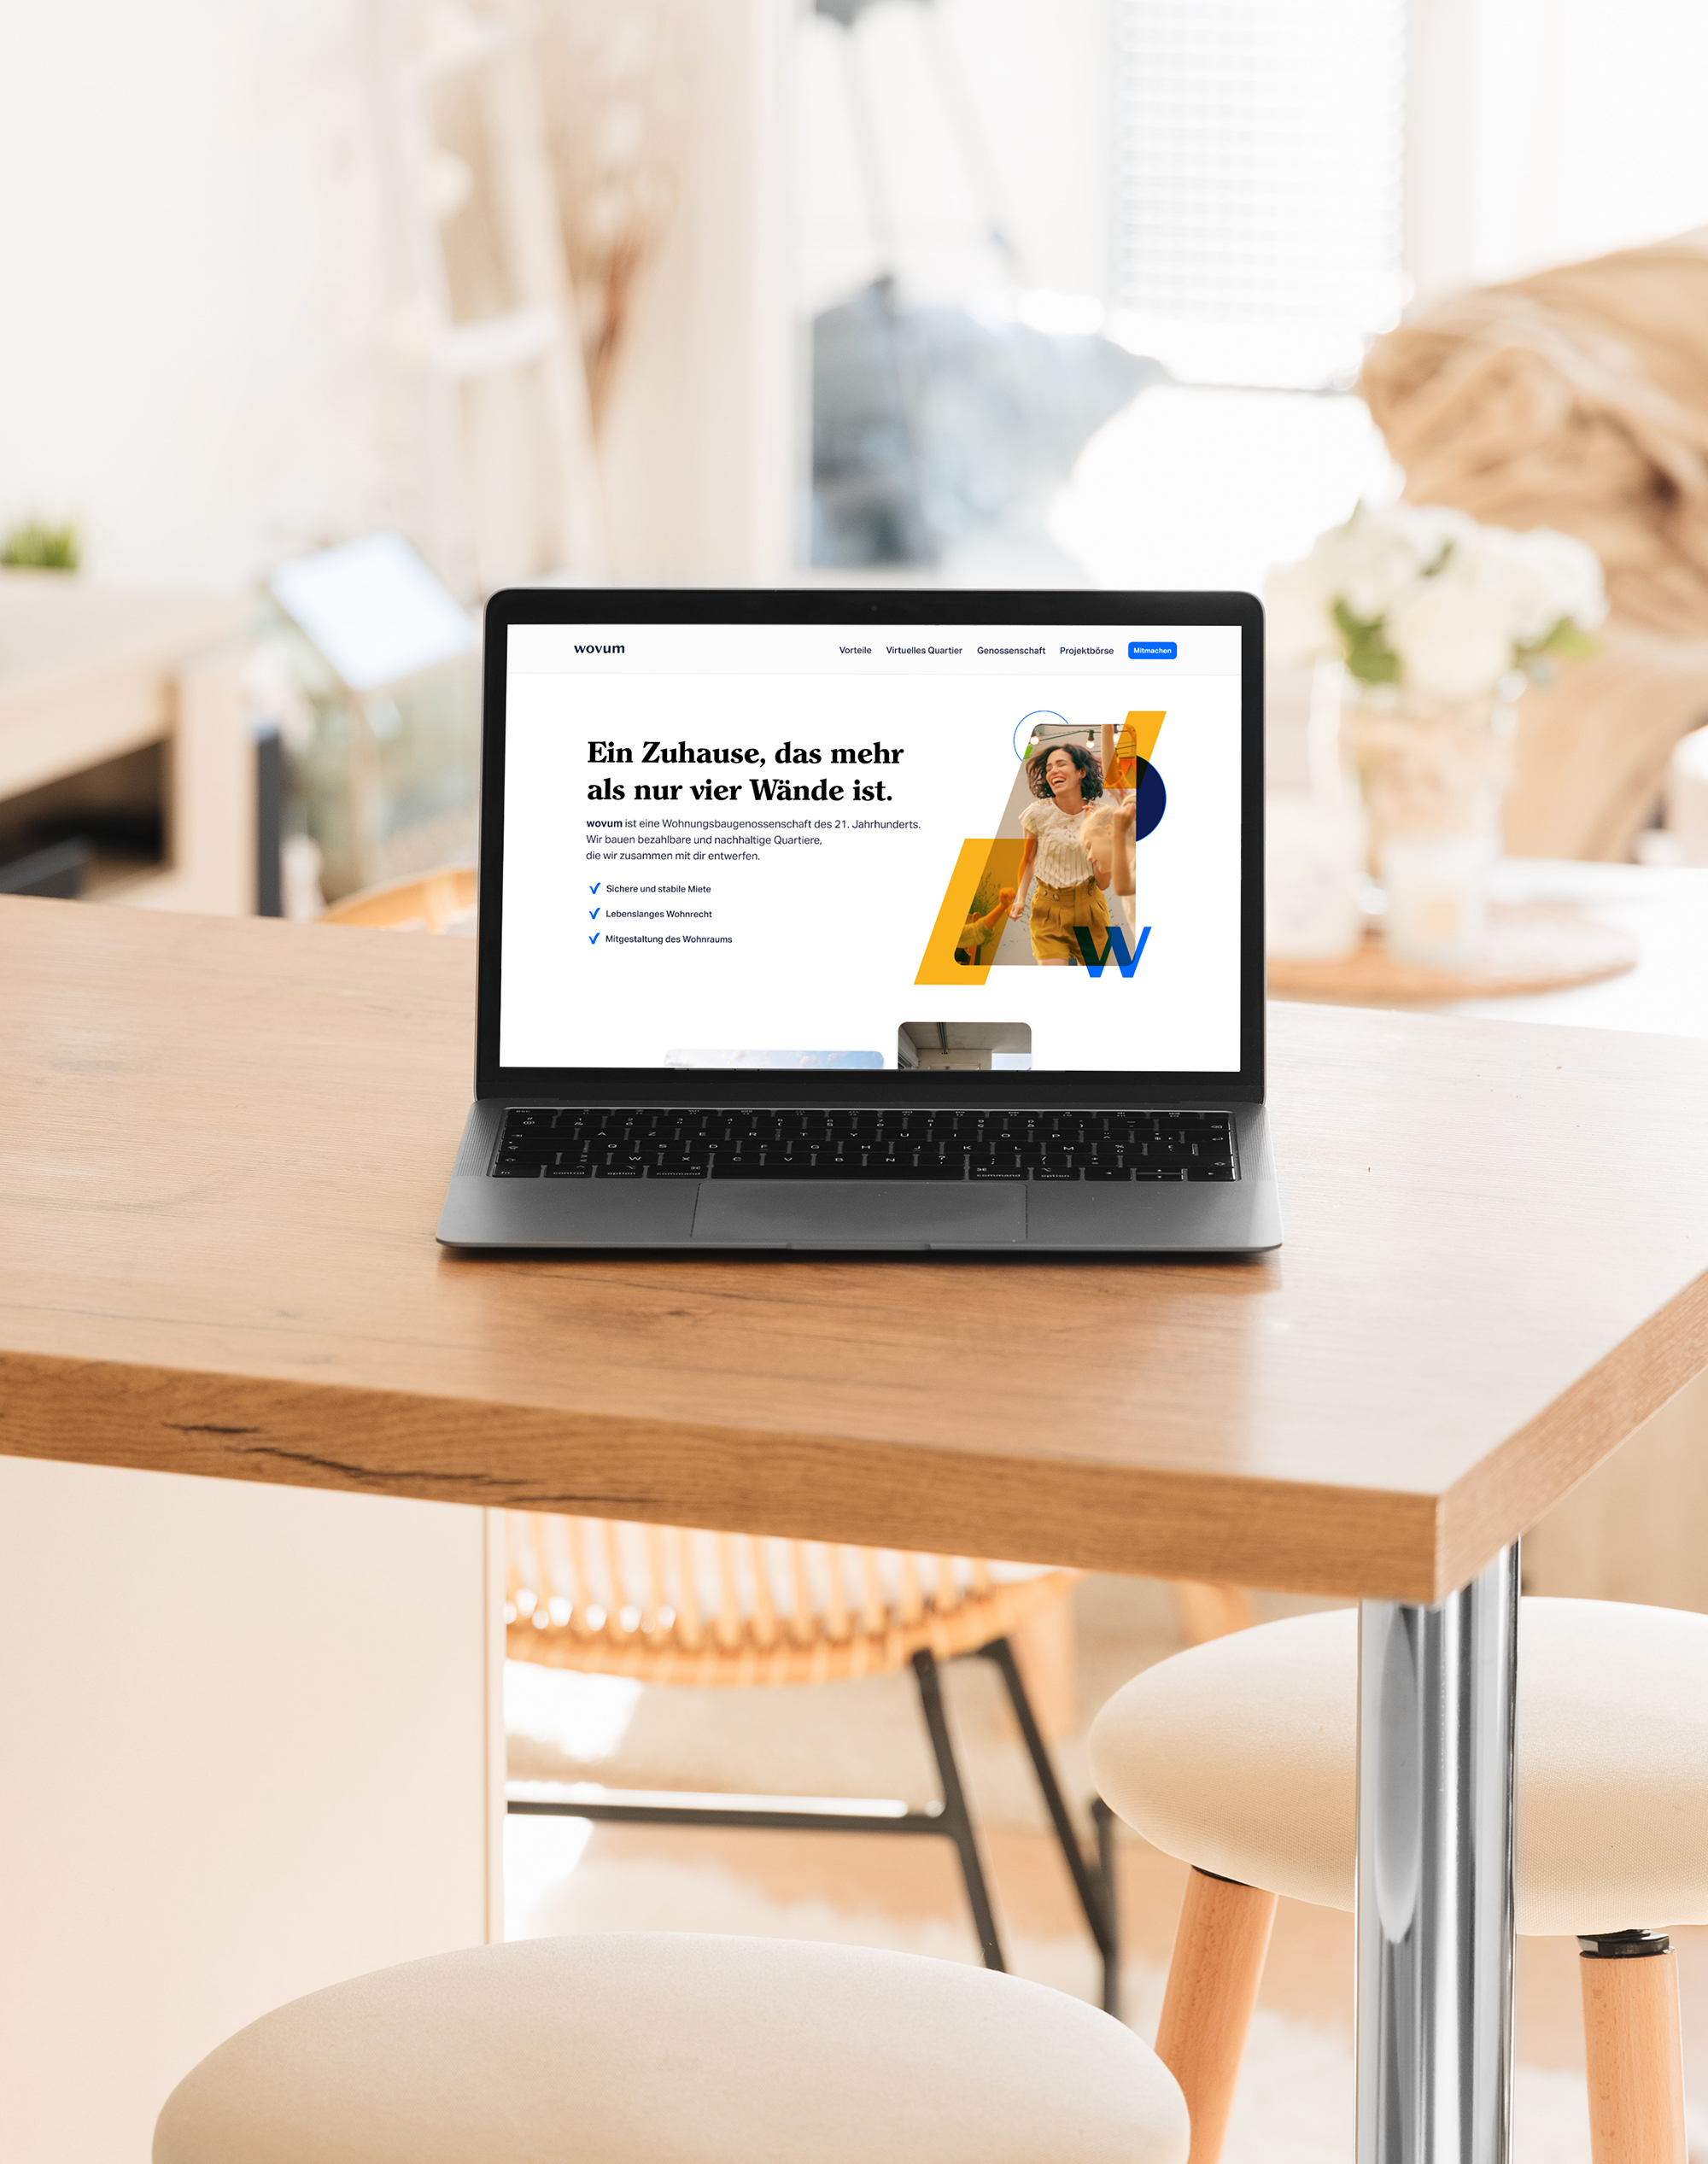 The image shows a laptop mockup showcasing the title page of the wovum landing page design.